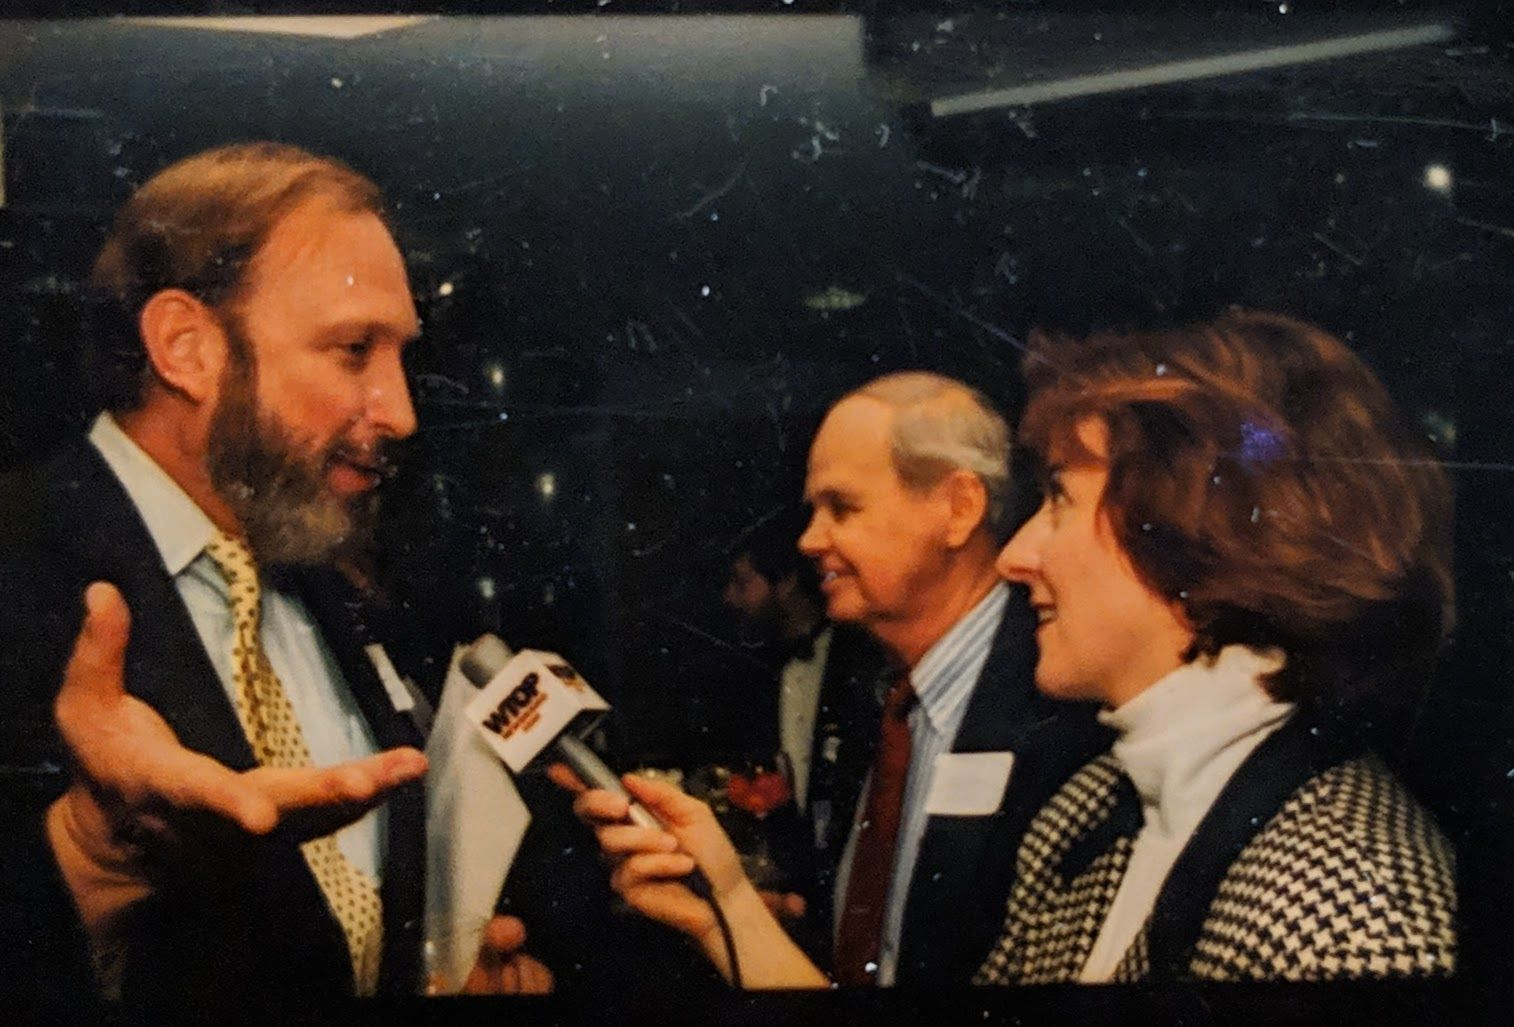 Bohannon chats with Kate Ryan during a 1994 event. (File photo)